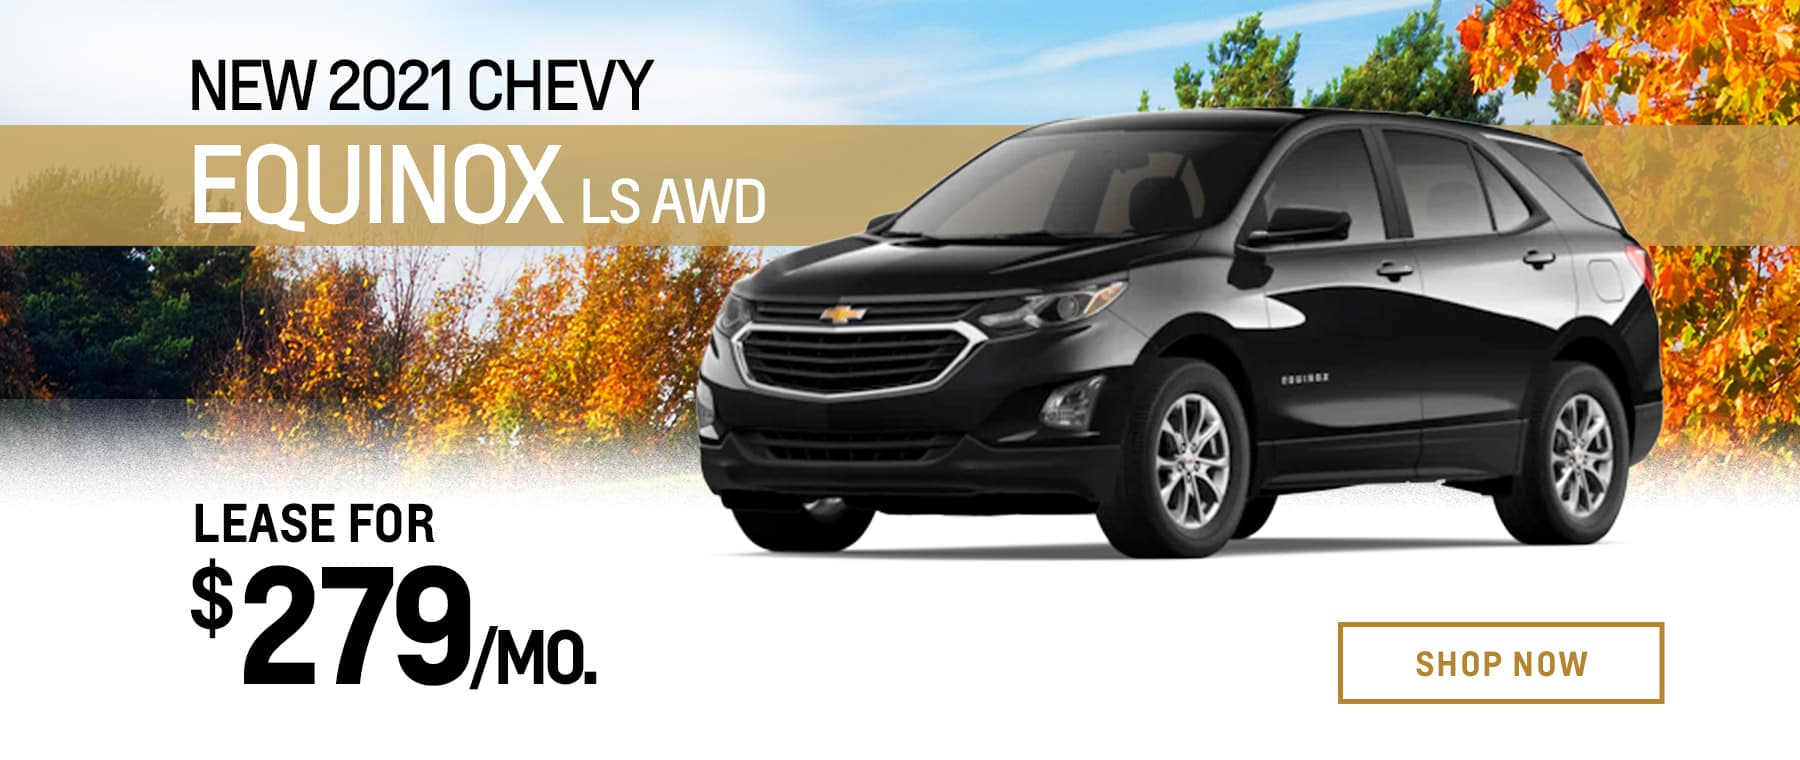 BCO-1800×760-New 2021 Chevy Equinox LS AWD _-0921